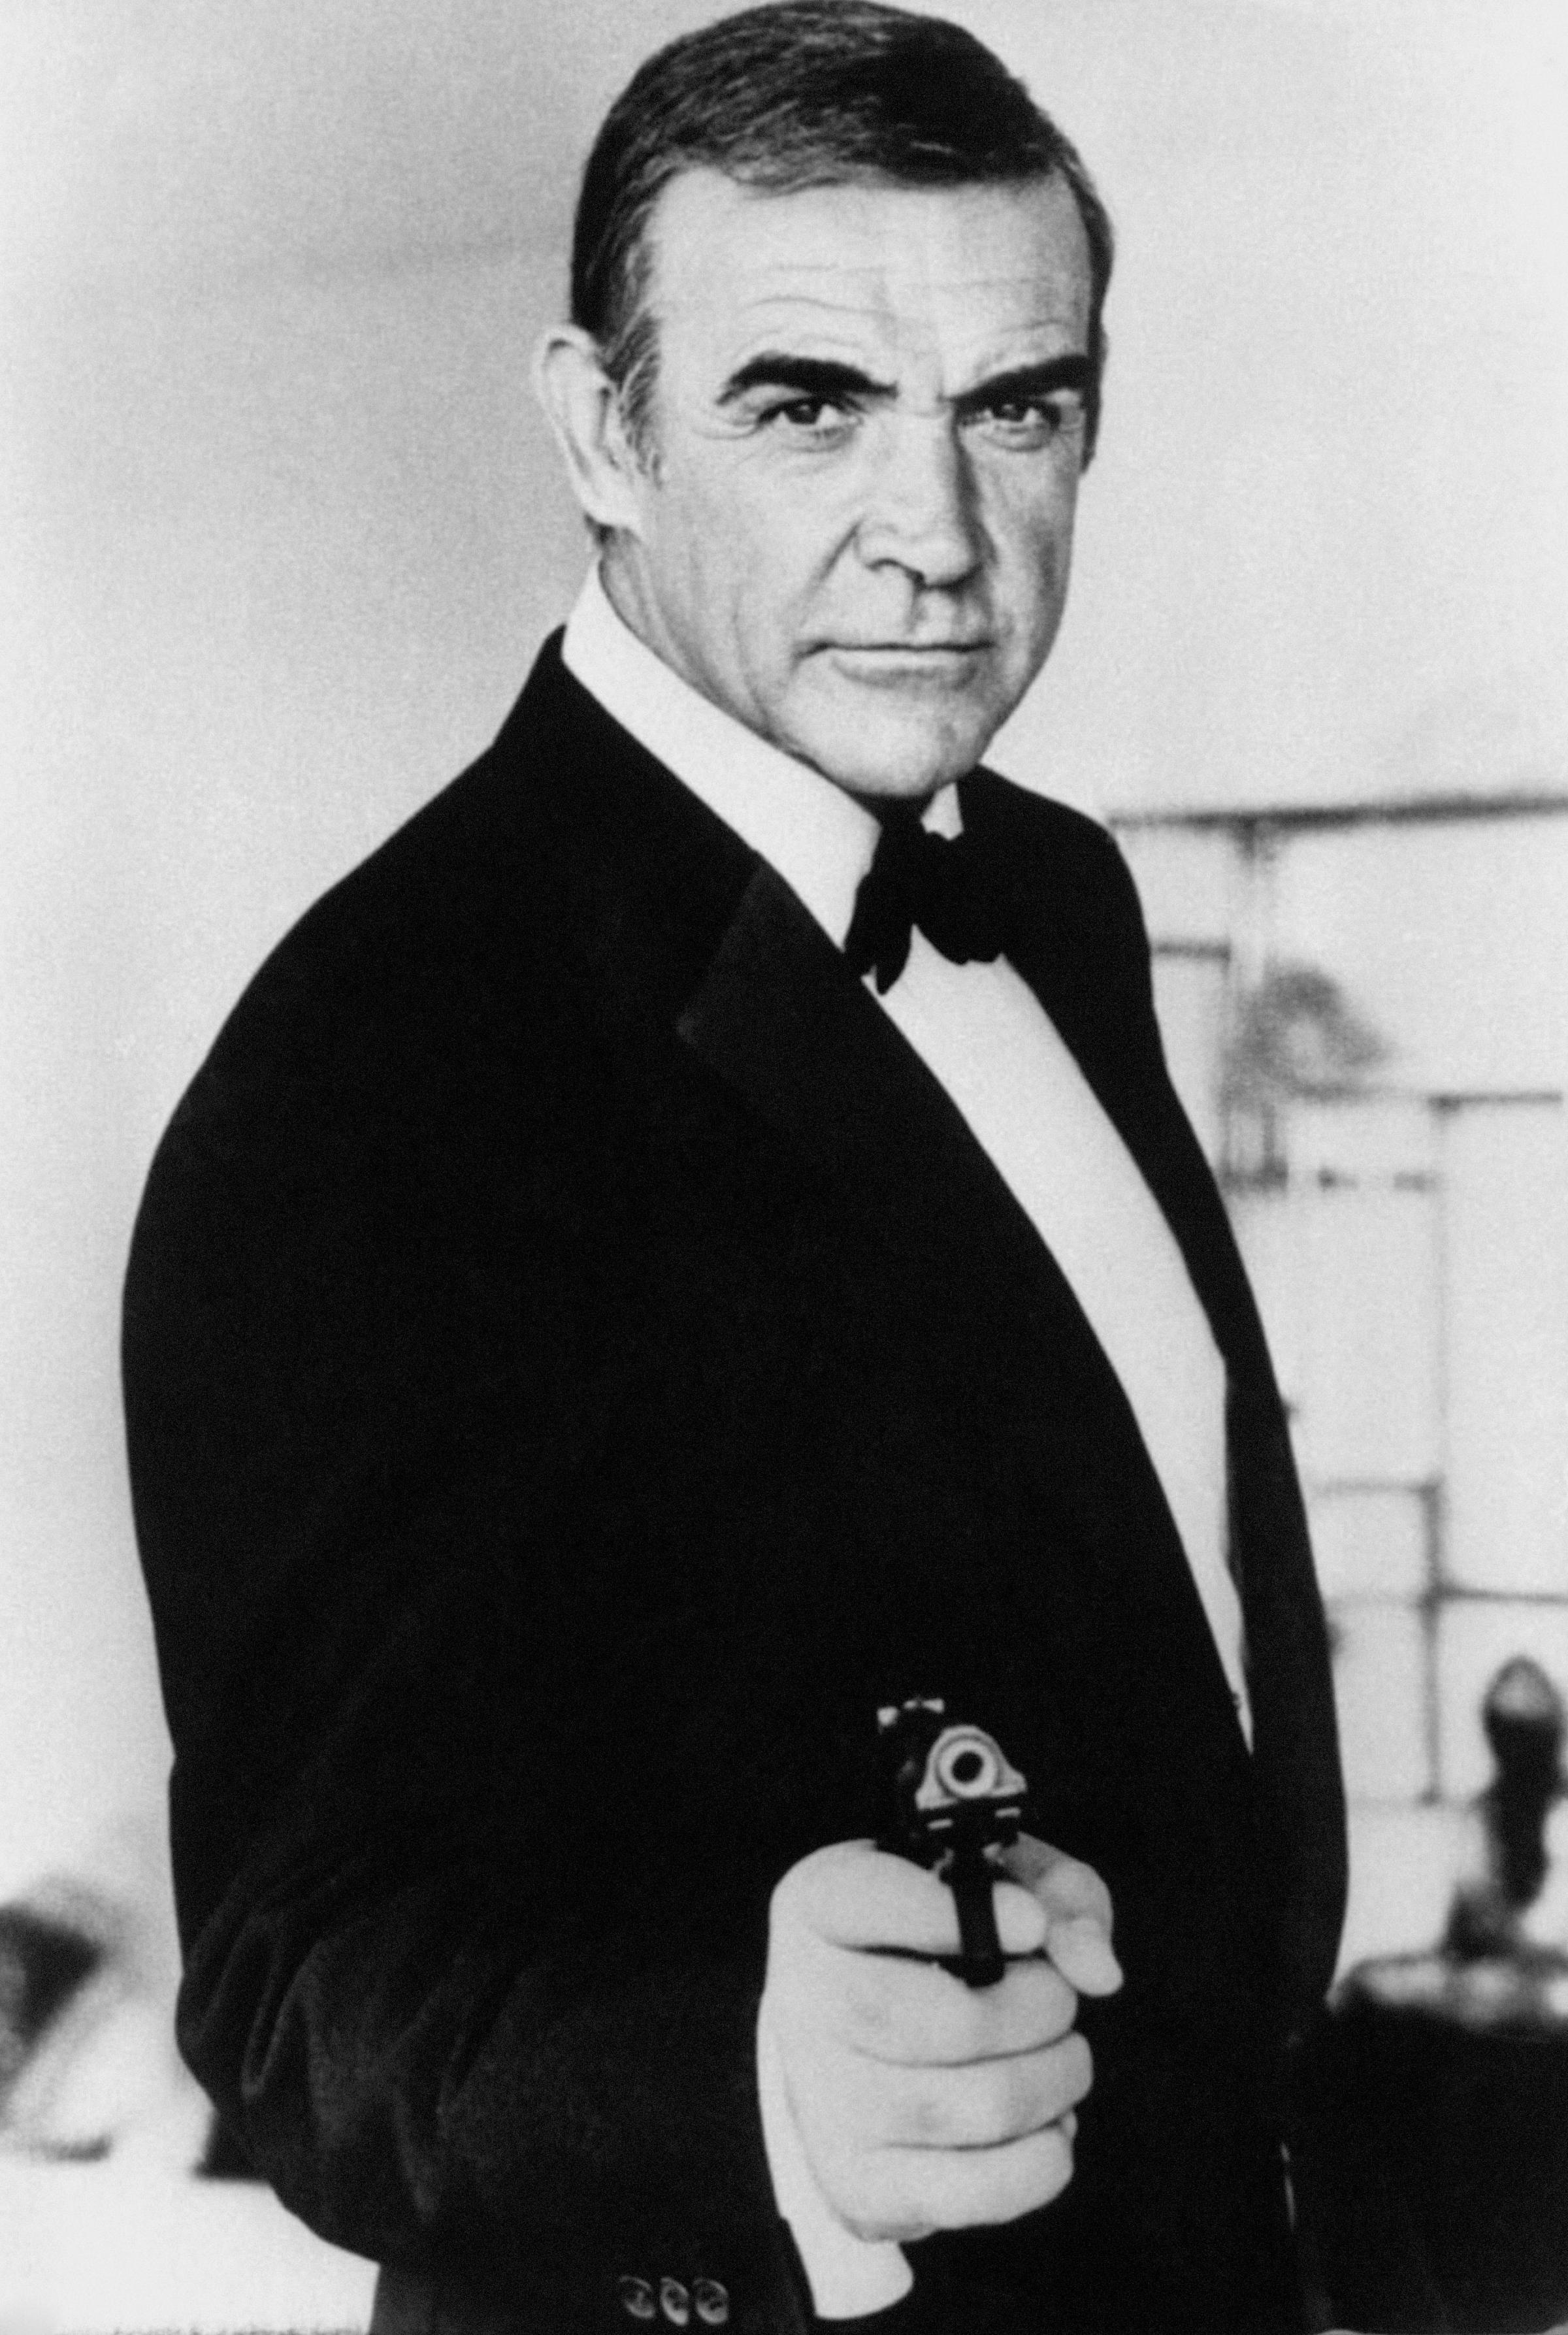 James Bond actor Sir Sean Connery dies at age of 90